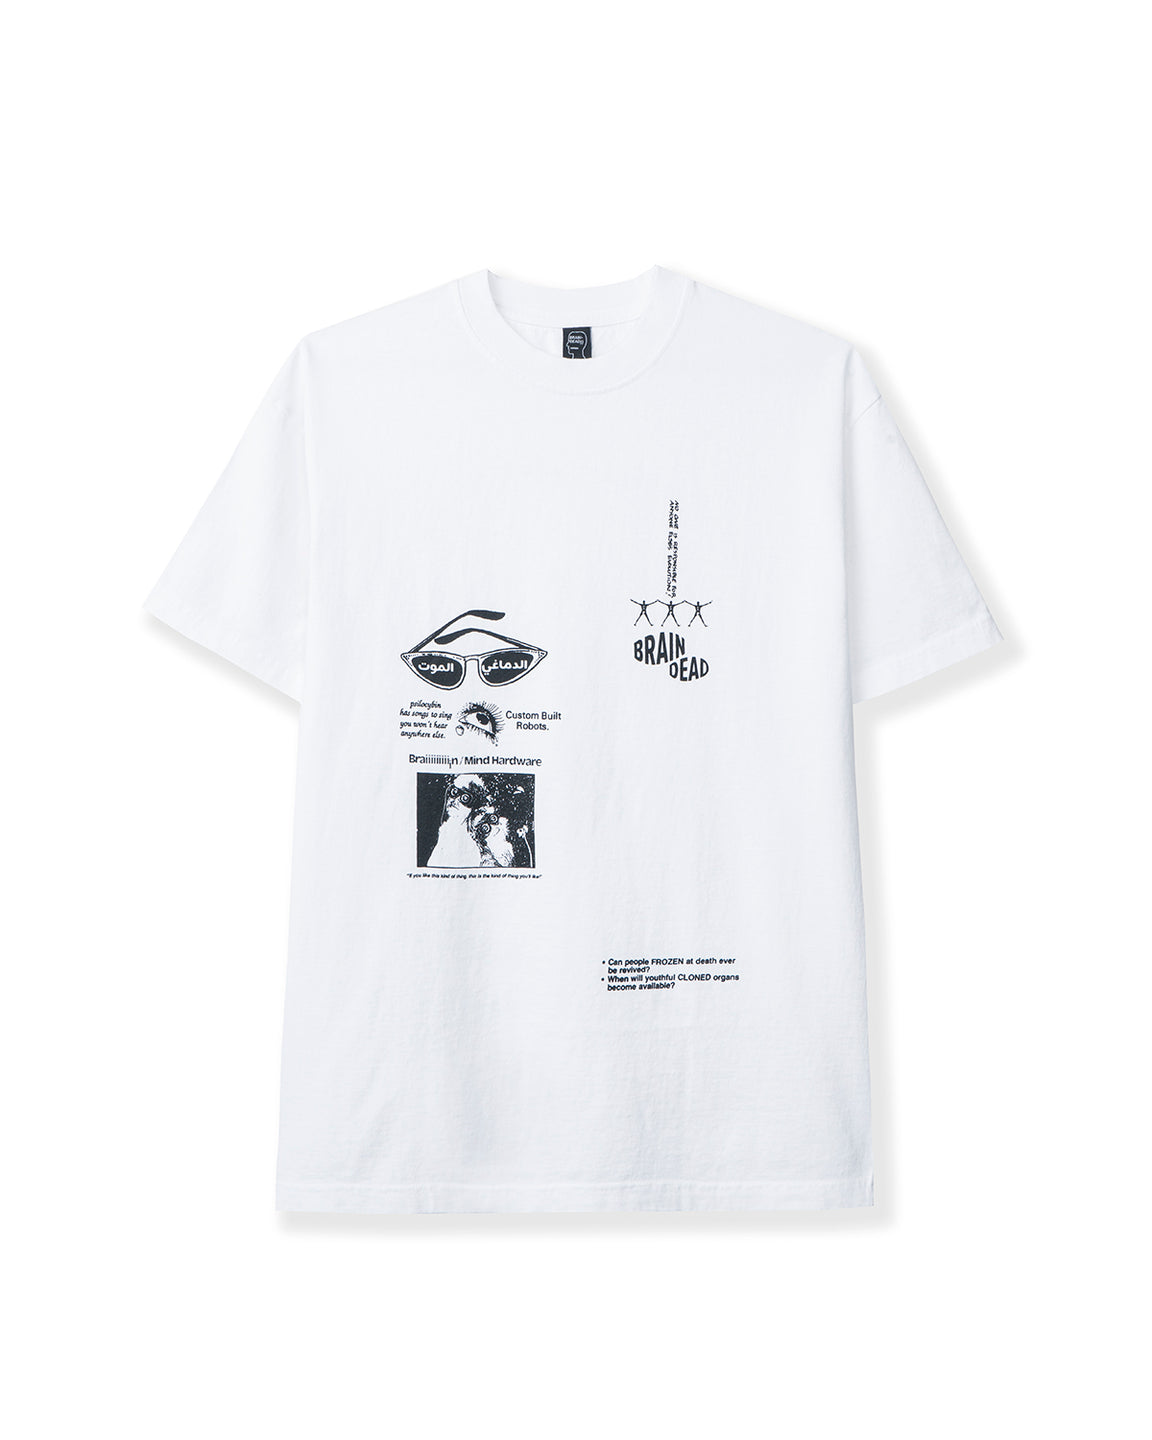 Sole DXB Youth Extension T-shirt - White